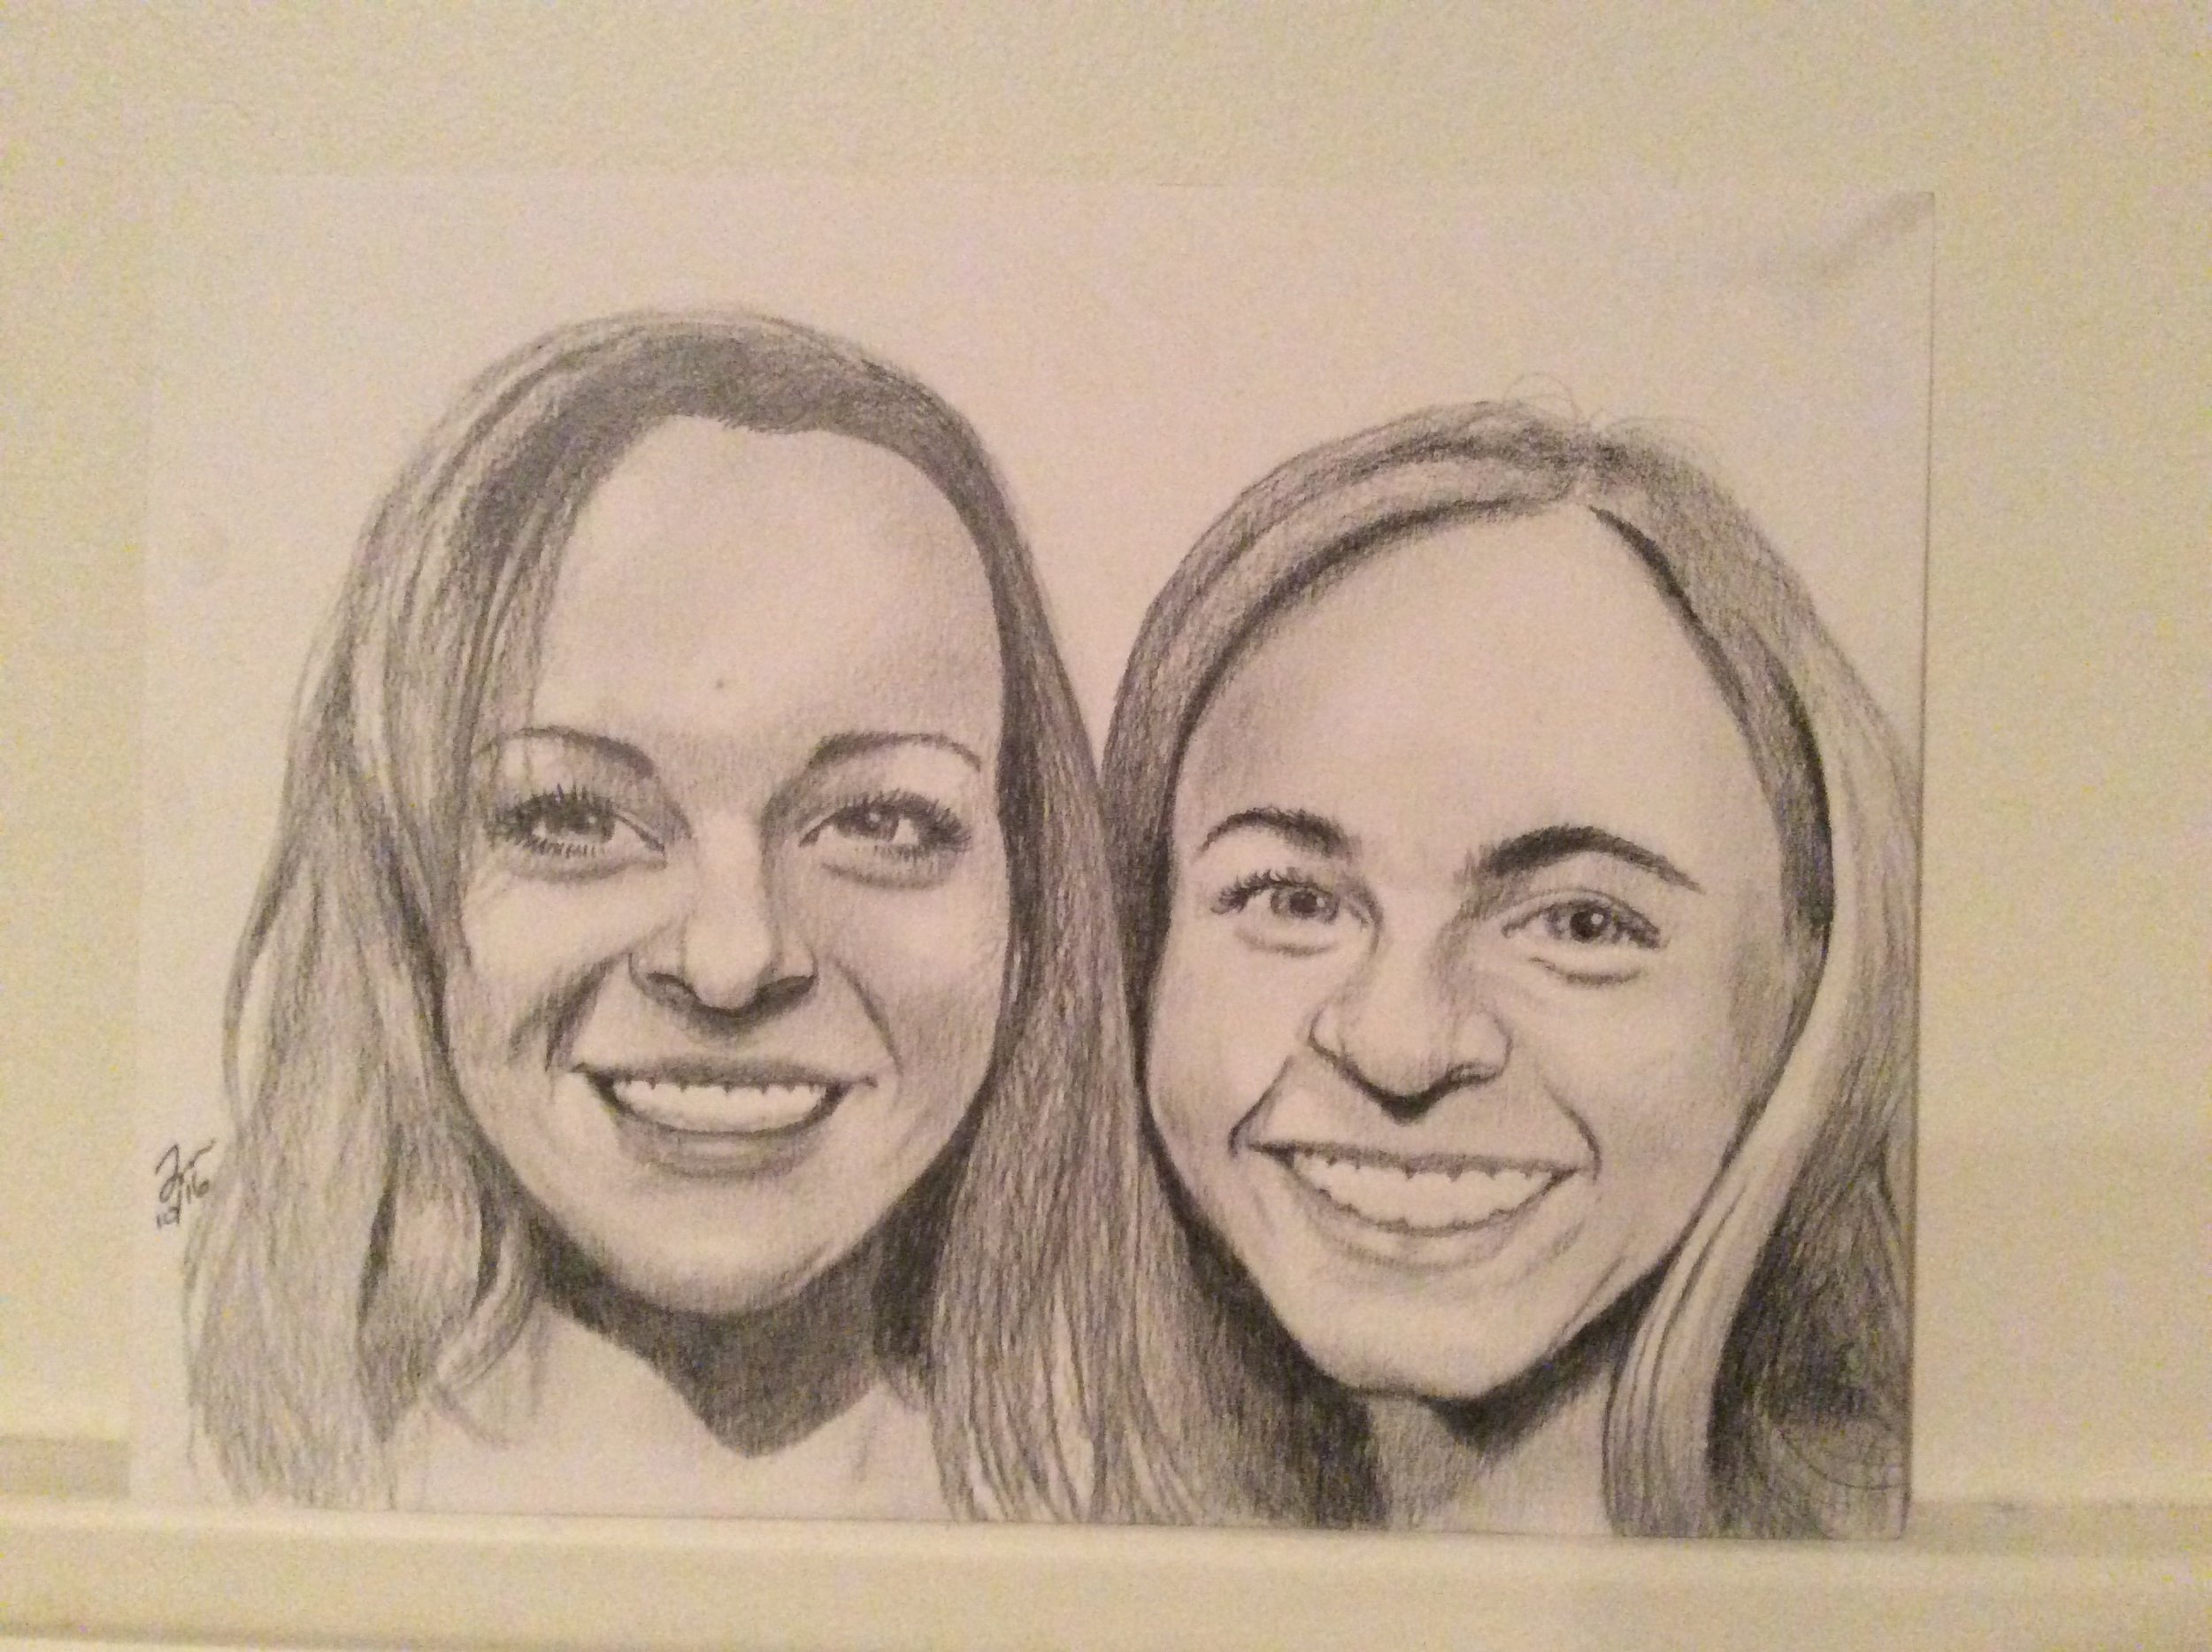 """Zamora, Gil.  Perspective sketch of Meghan and friend.  2016. Graphite on paper, 11"""" x 14"""". Dadiego private collection."""